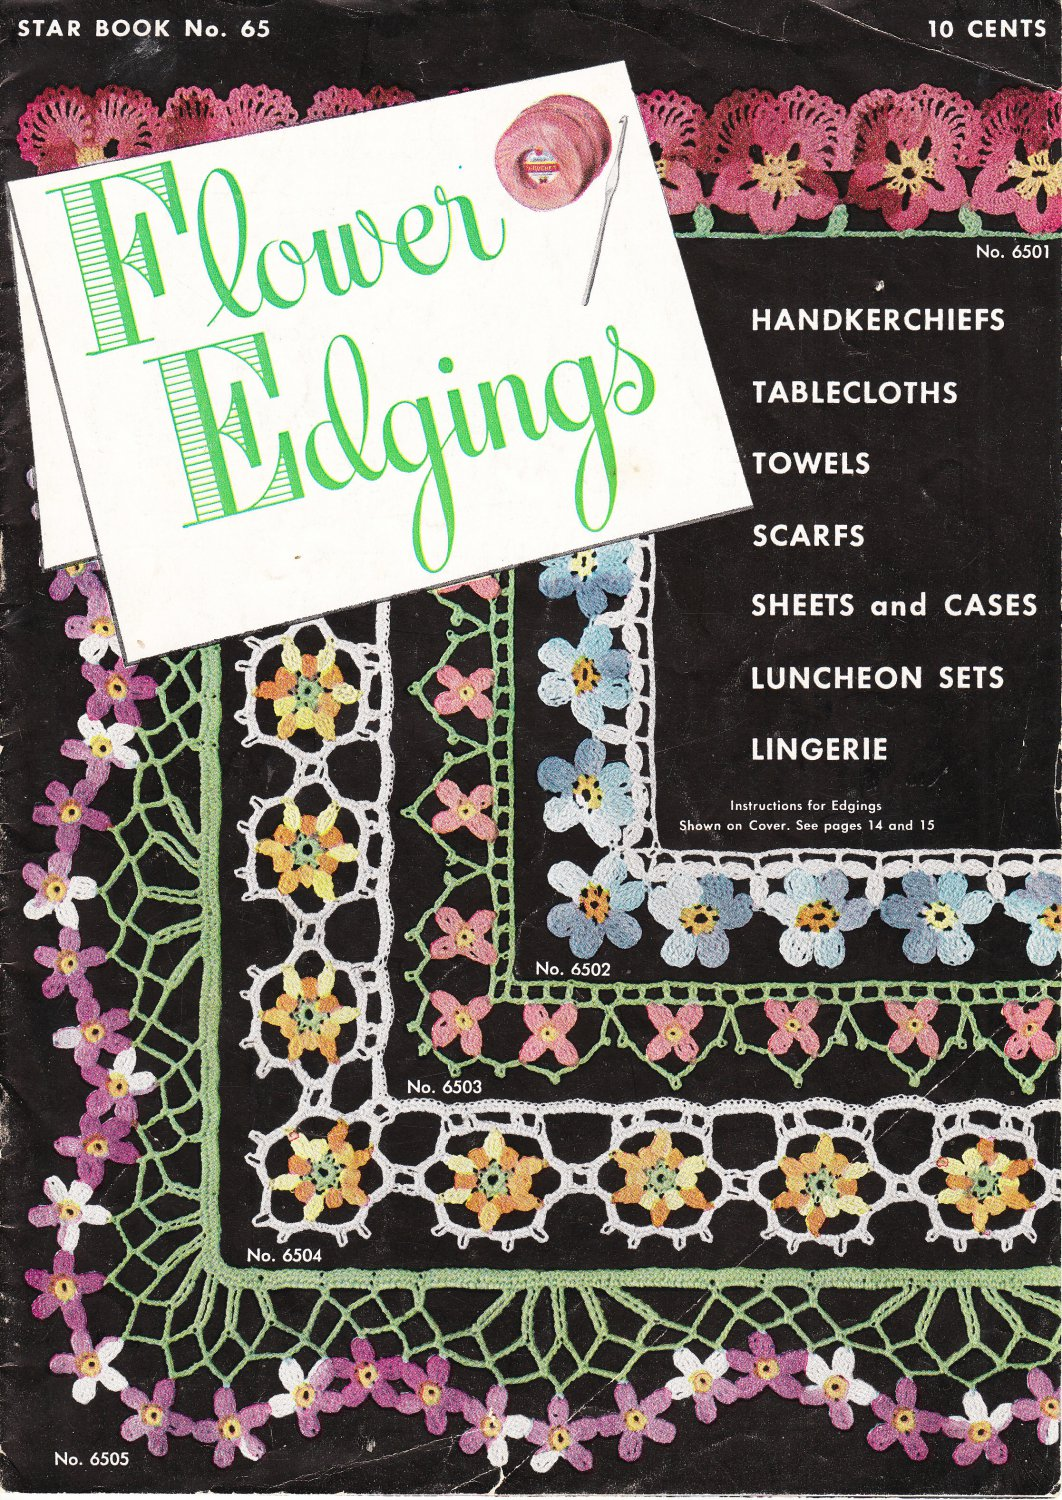 American Thread Star Book No.65 Crochet Flower Edgings 1949 Pattern Booklet